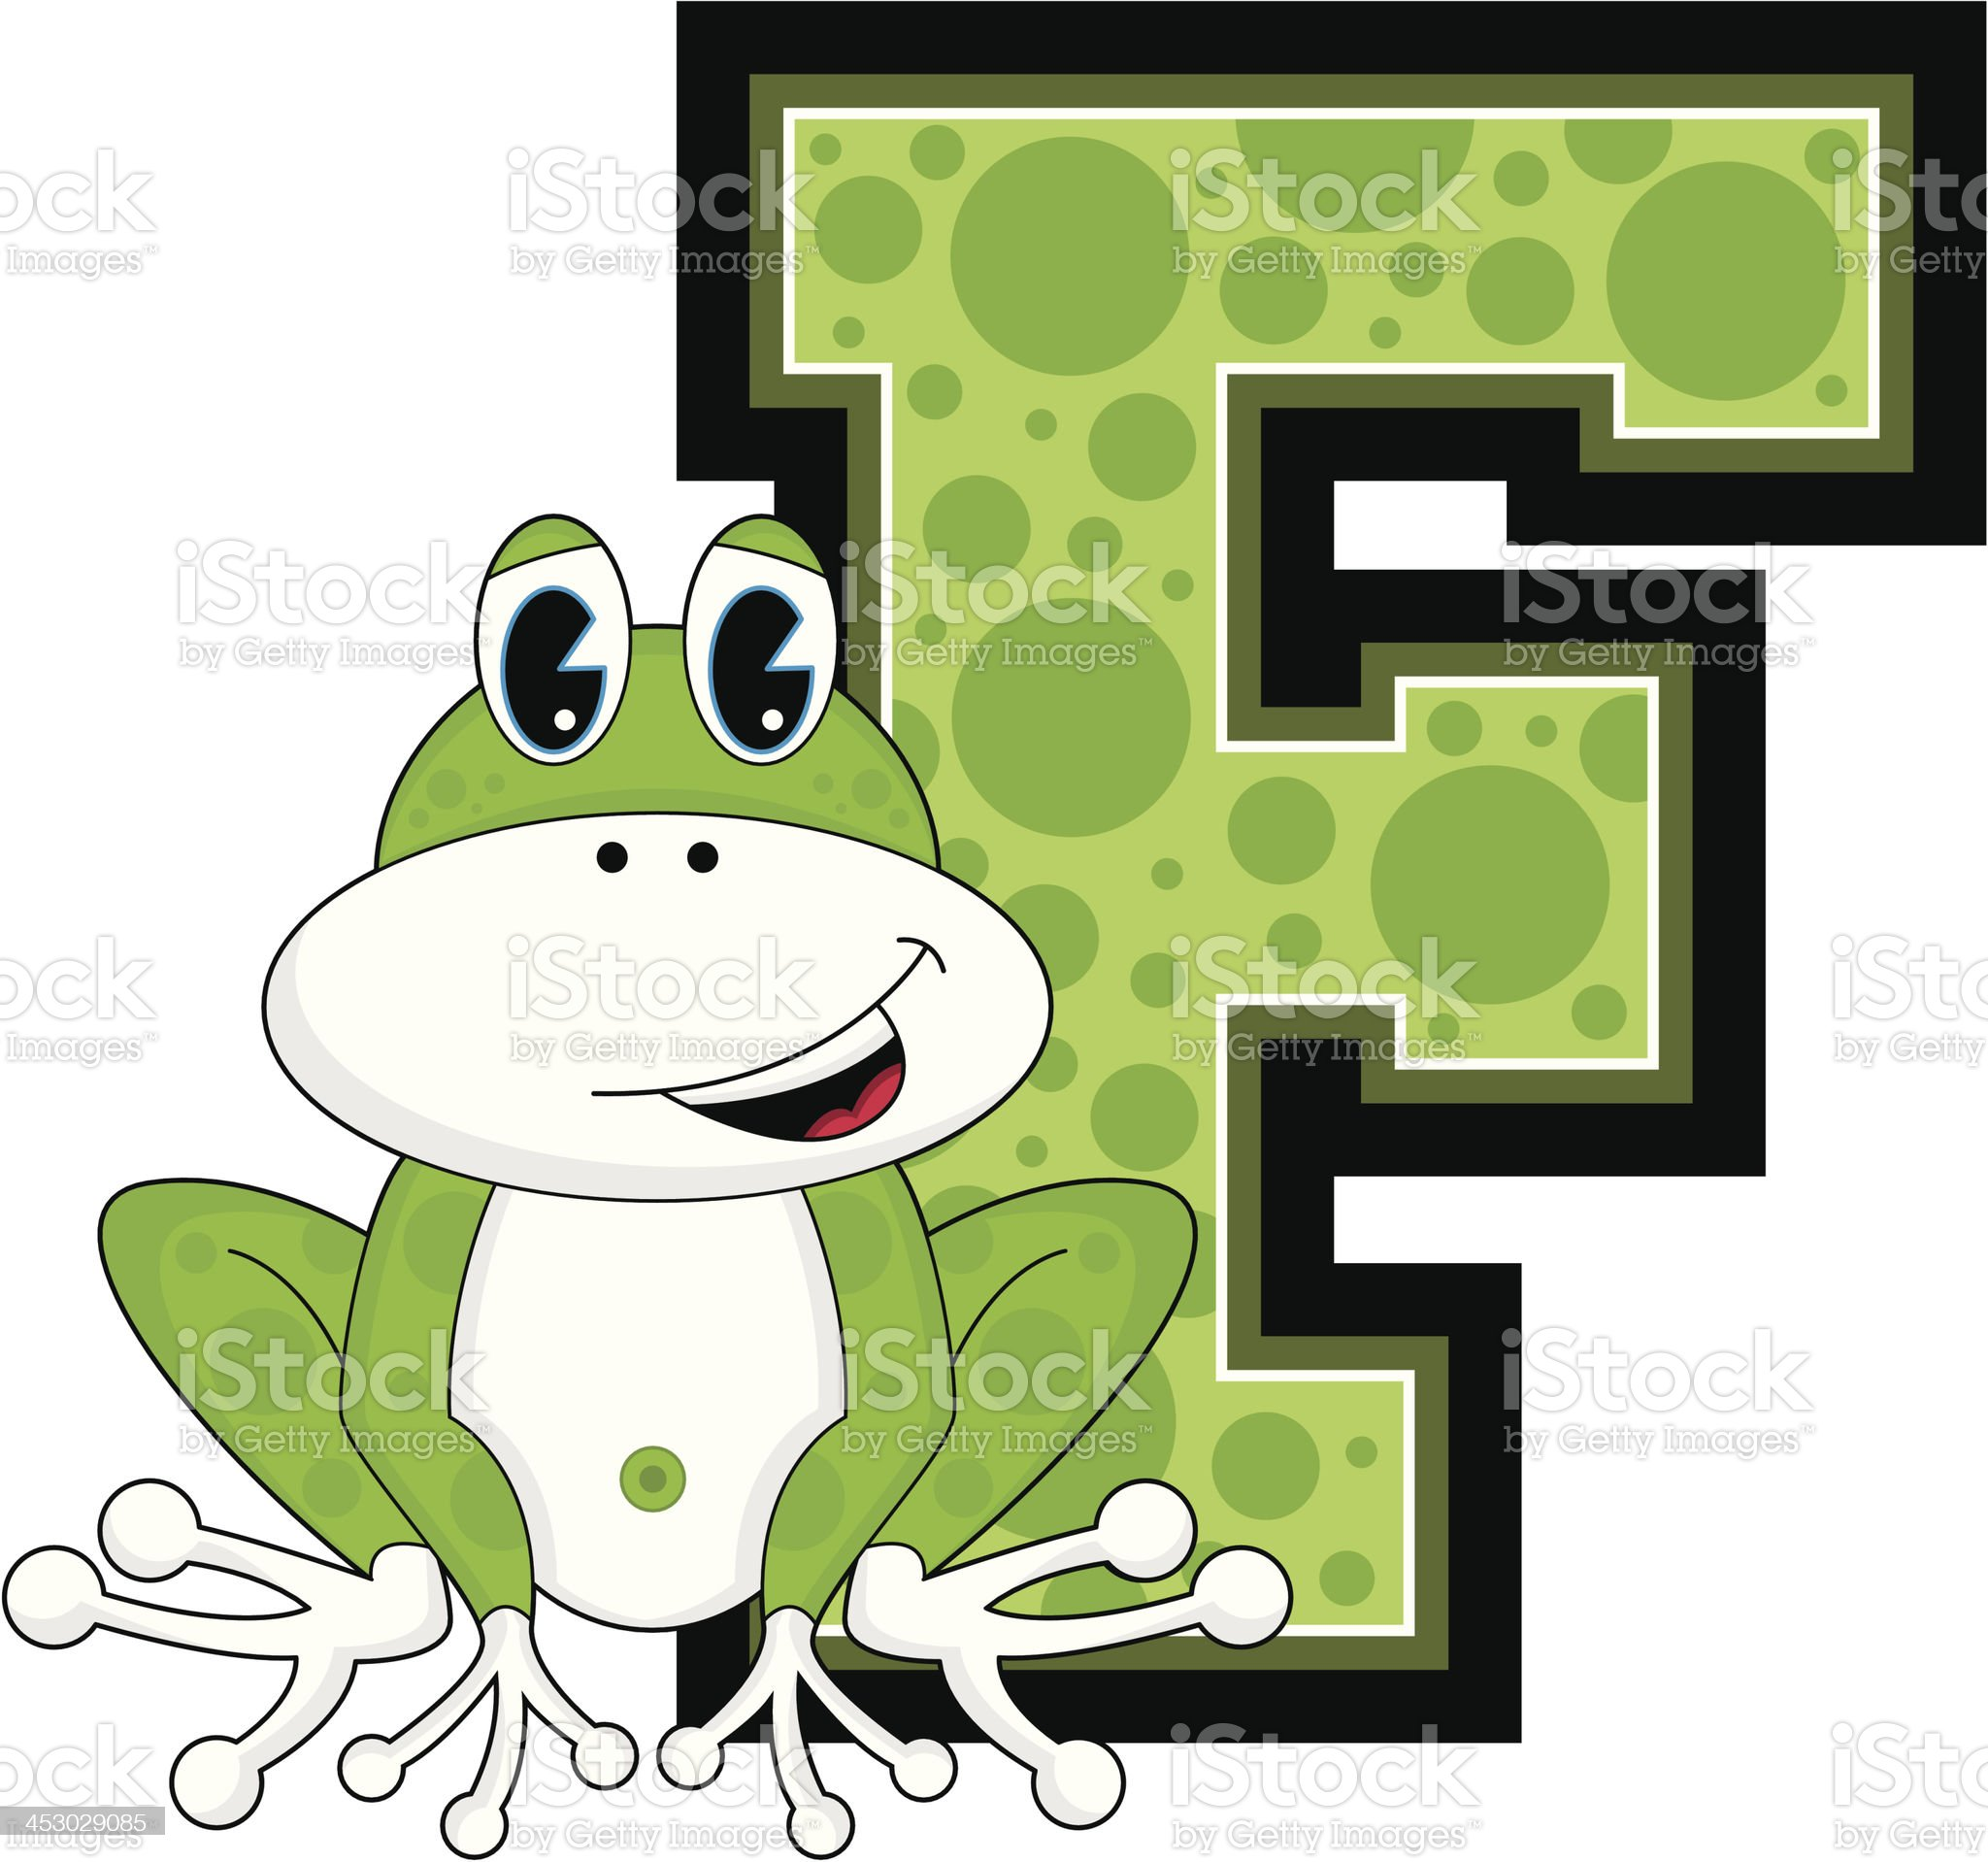 Cute Little Frog Learning Letter F royalty-free stock vector art